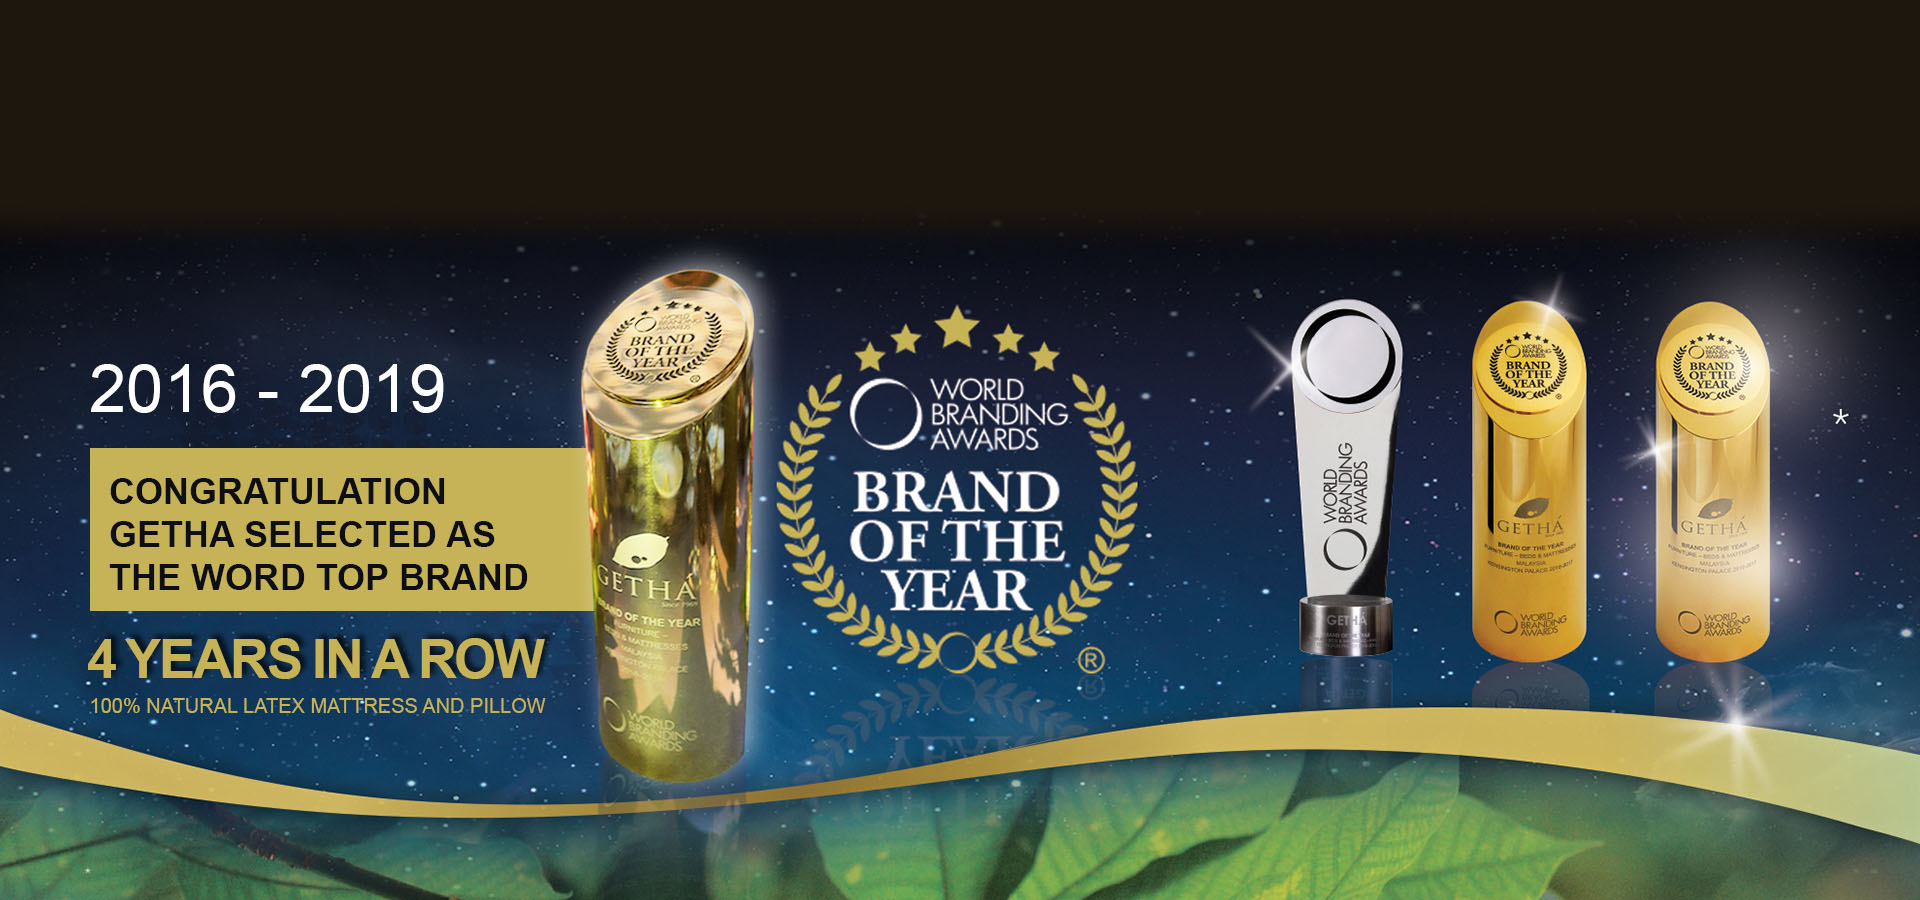 getha word top brand 2019